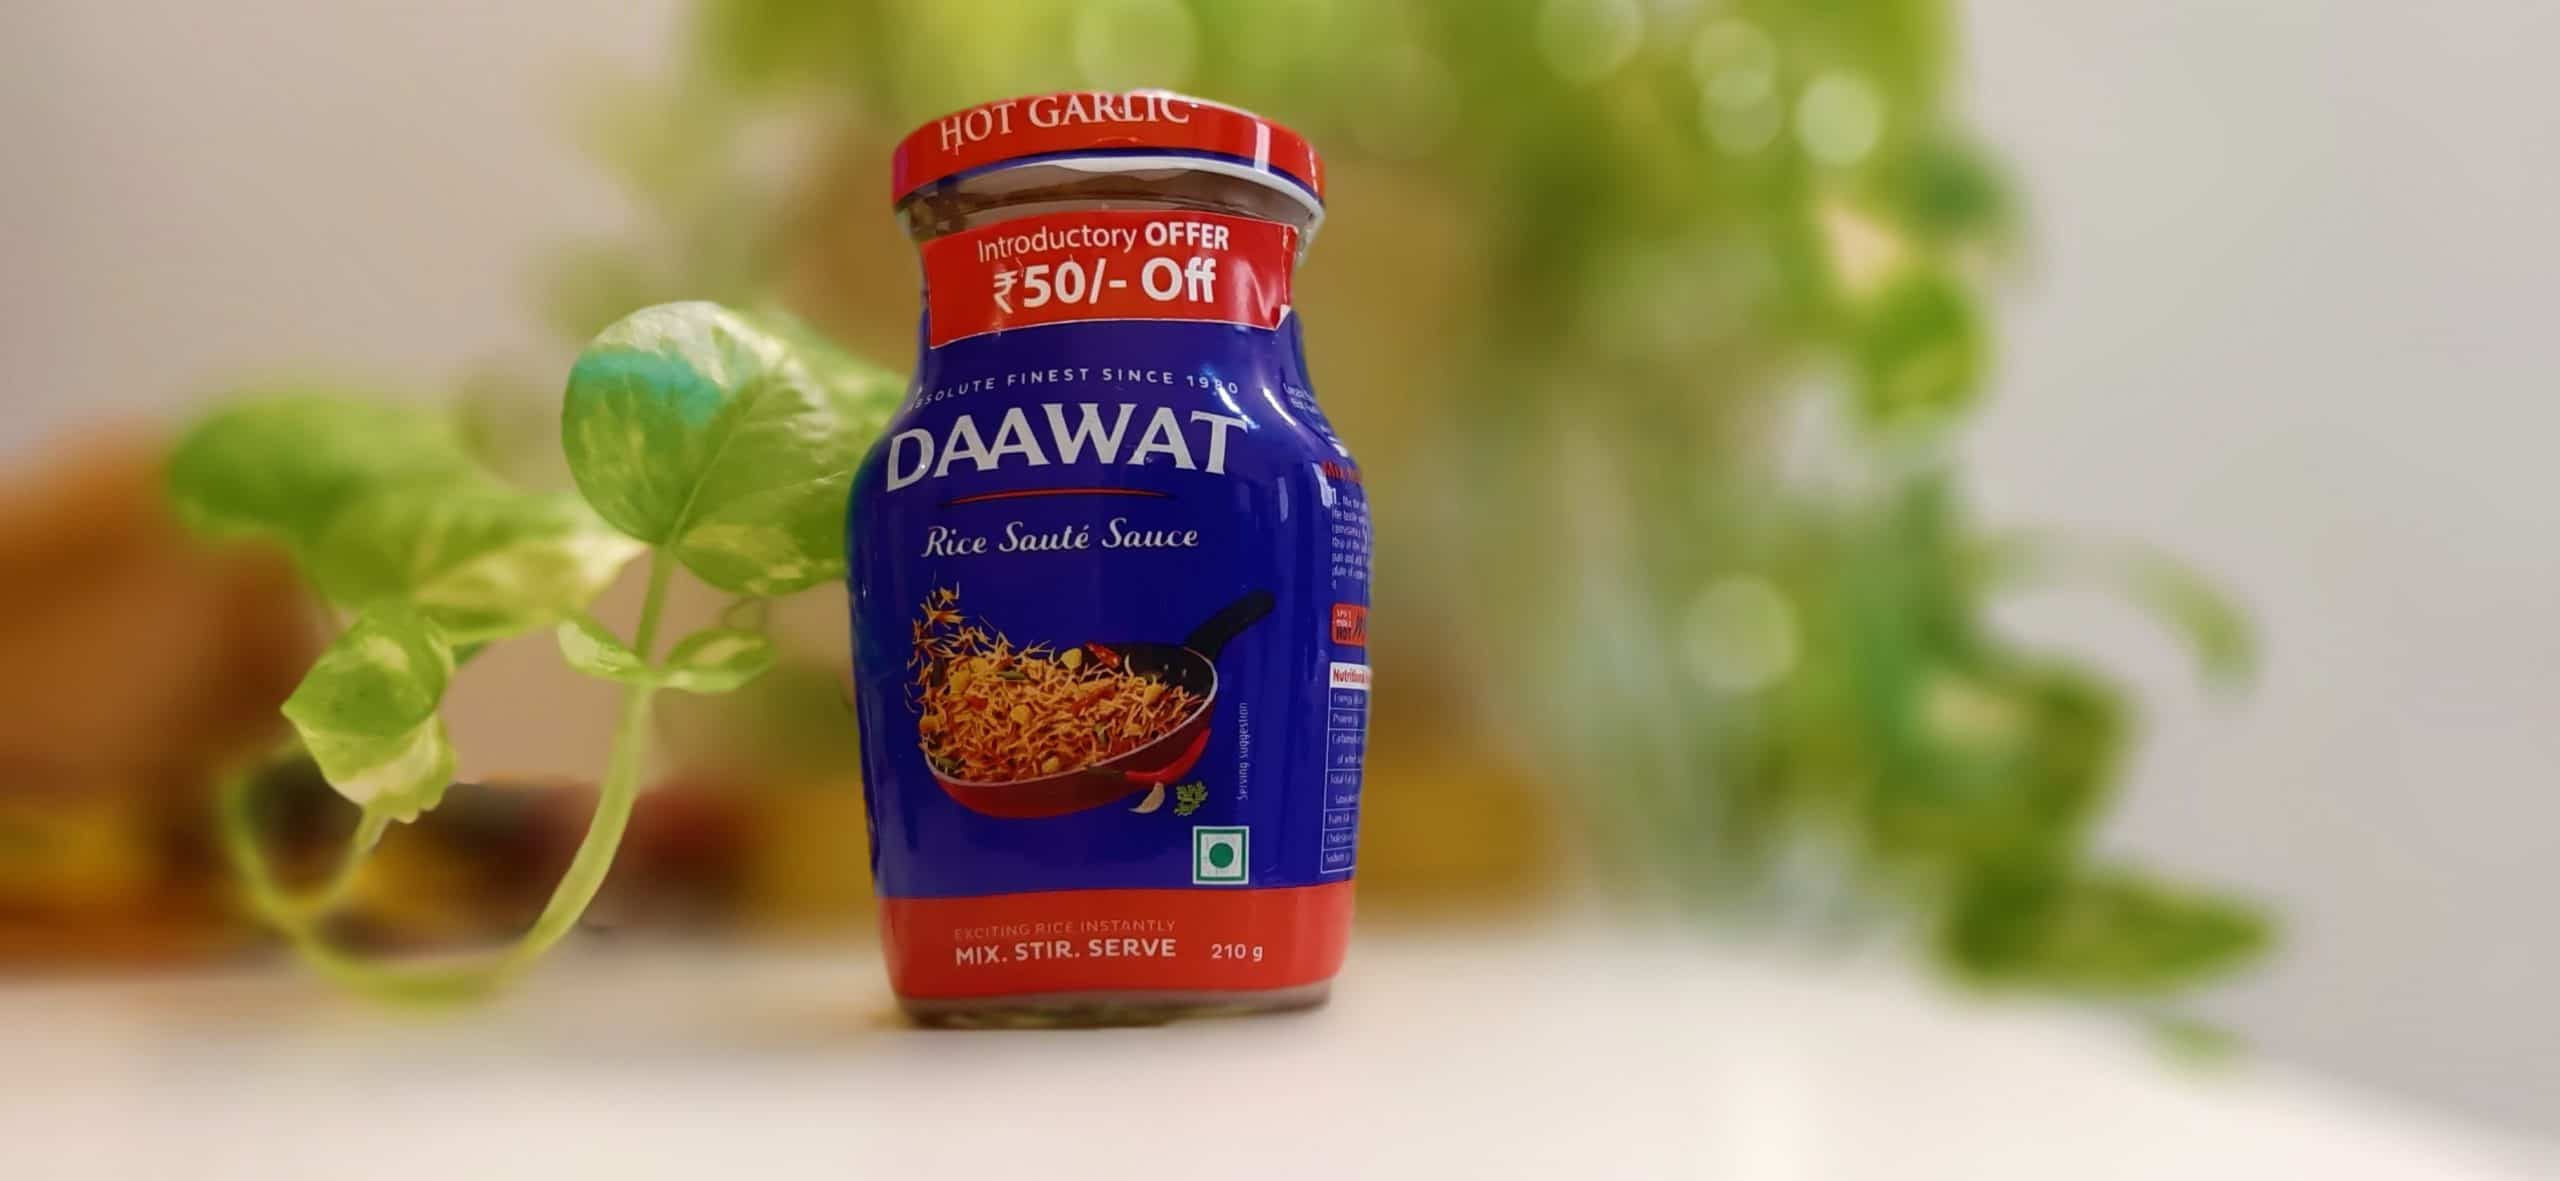 Daawat Rice Sauté Sauce Hot Garlic-mishry